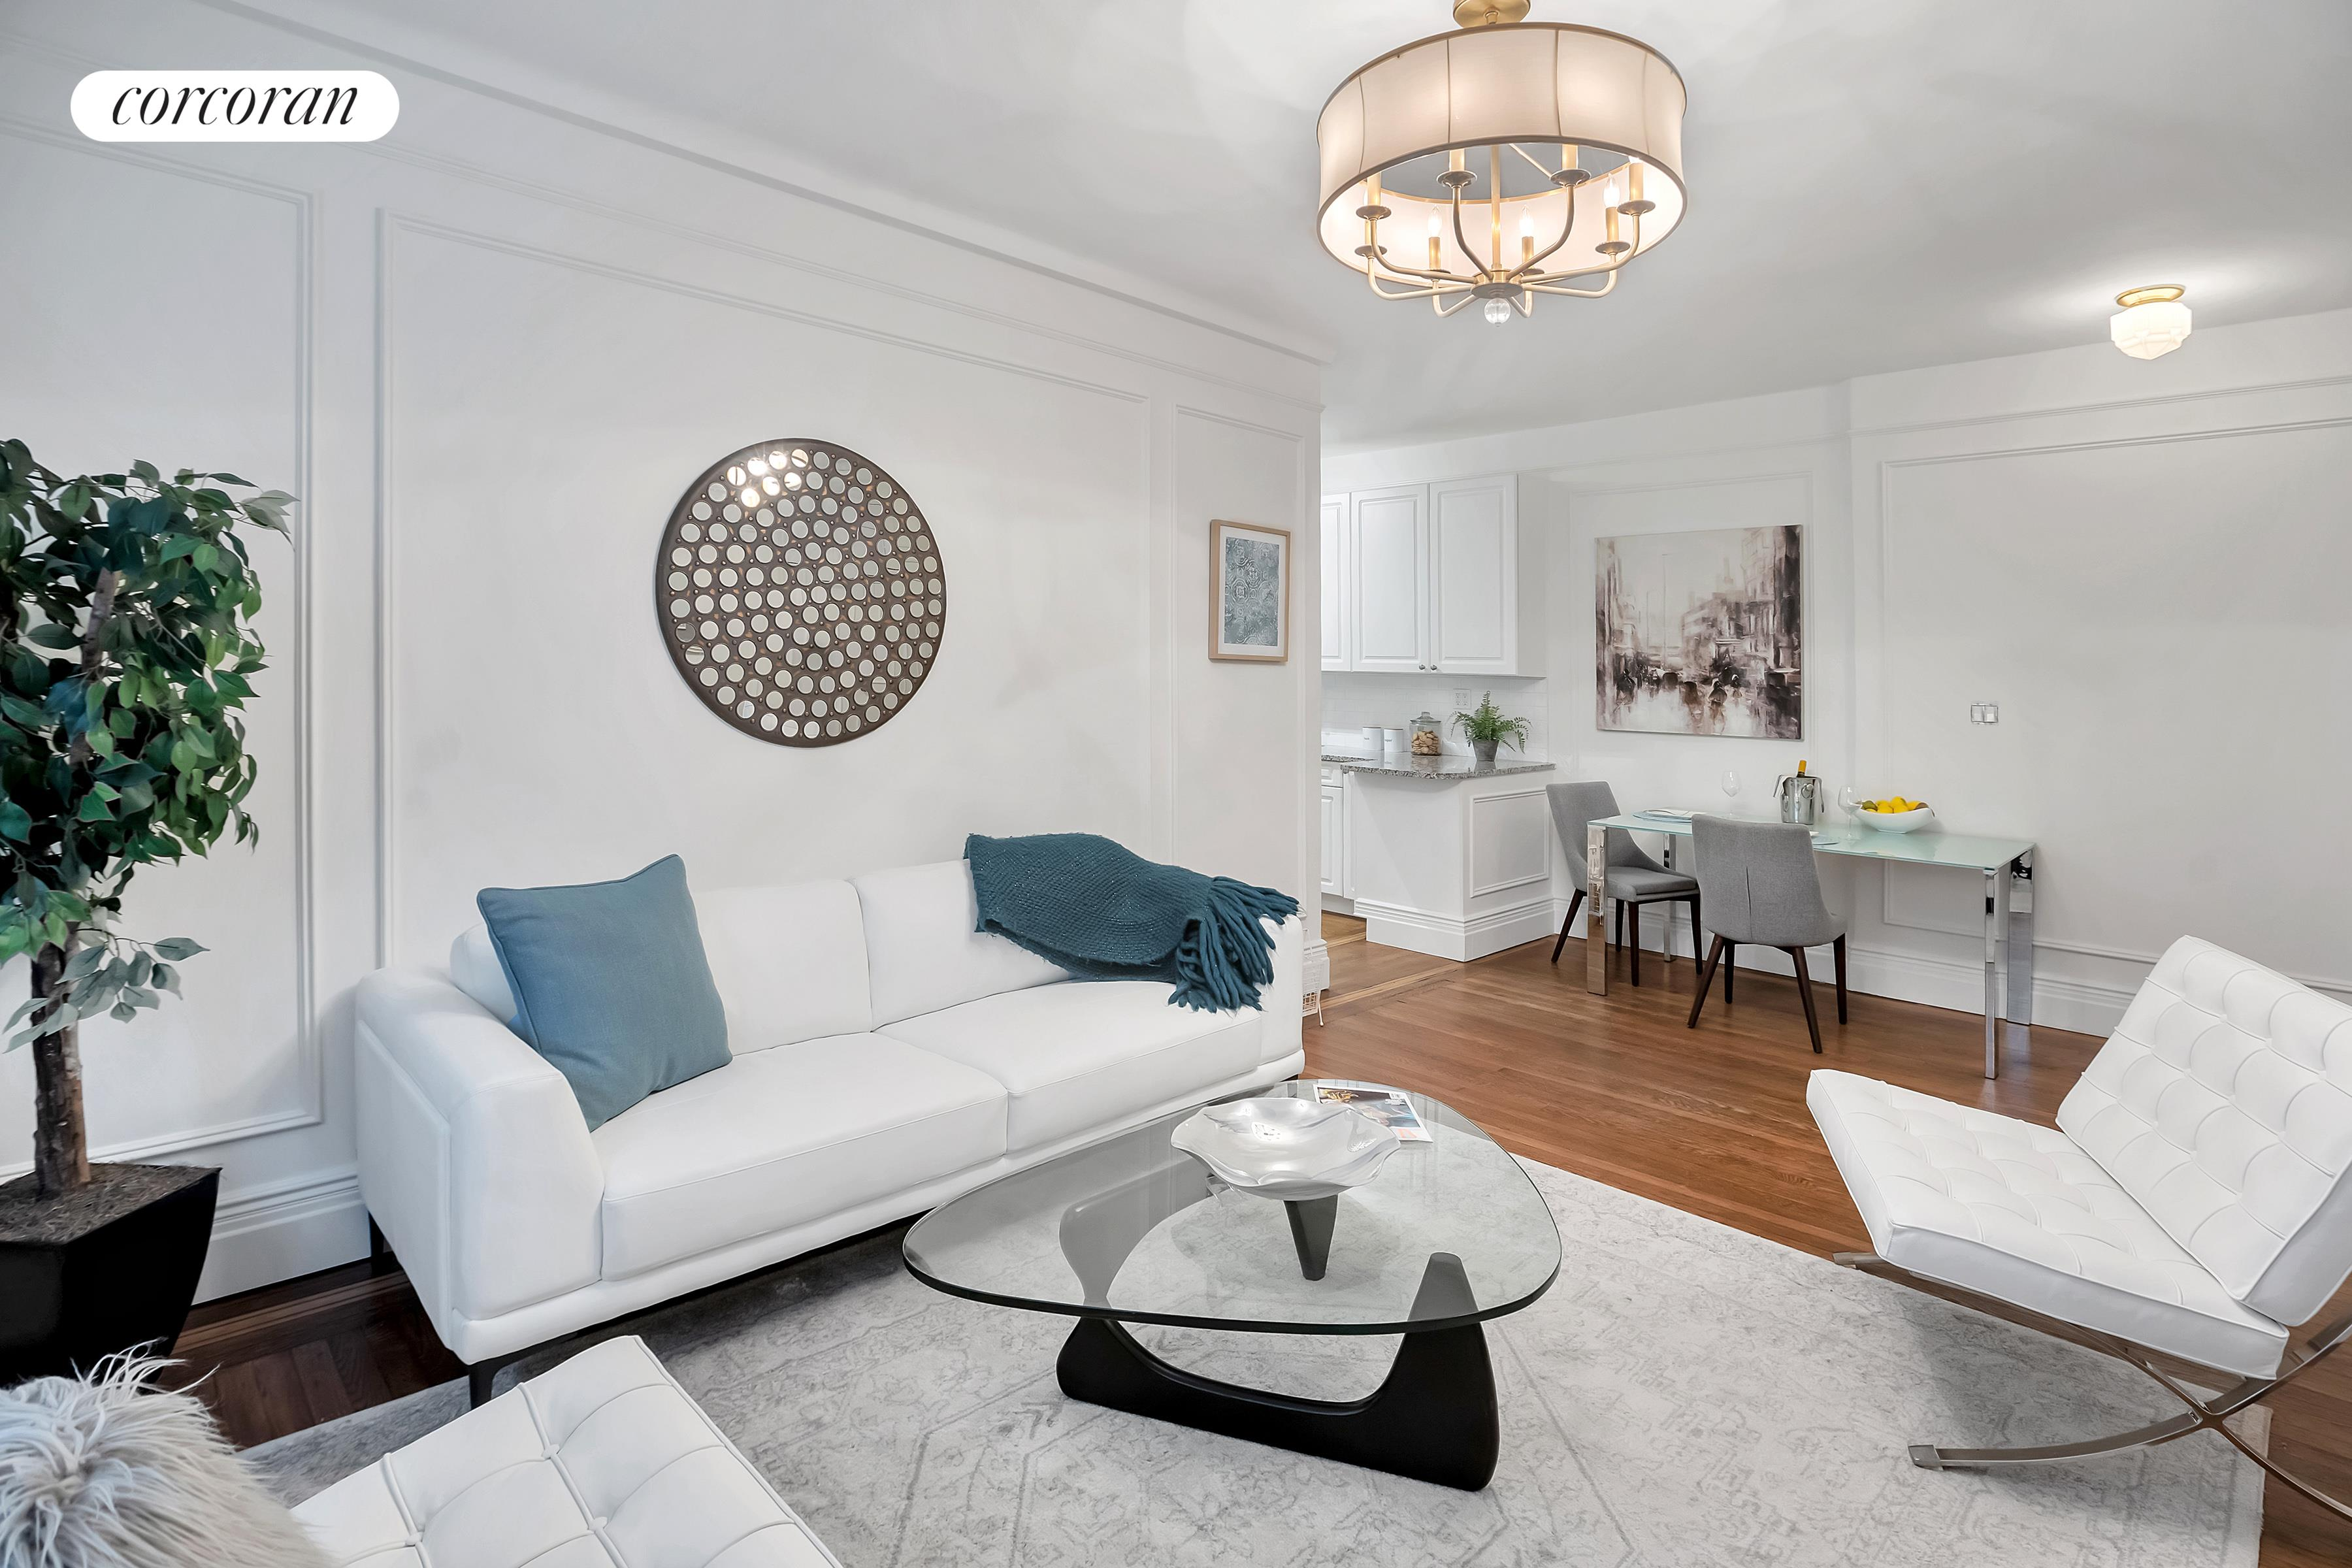 Apartment for sale at 140 West 71st Street, Apt 2J